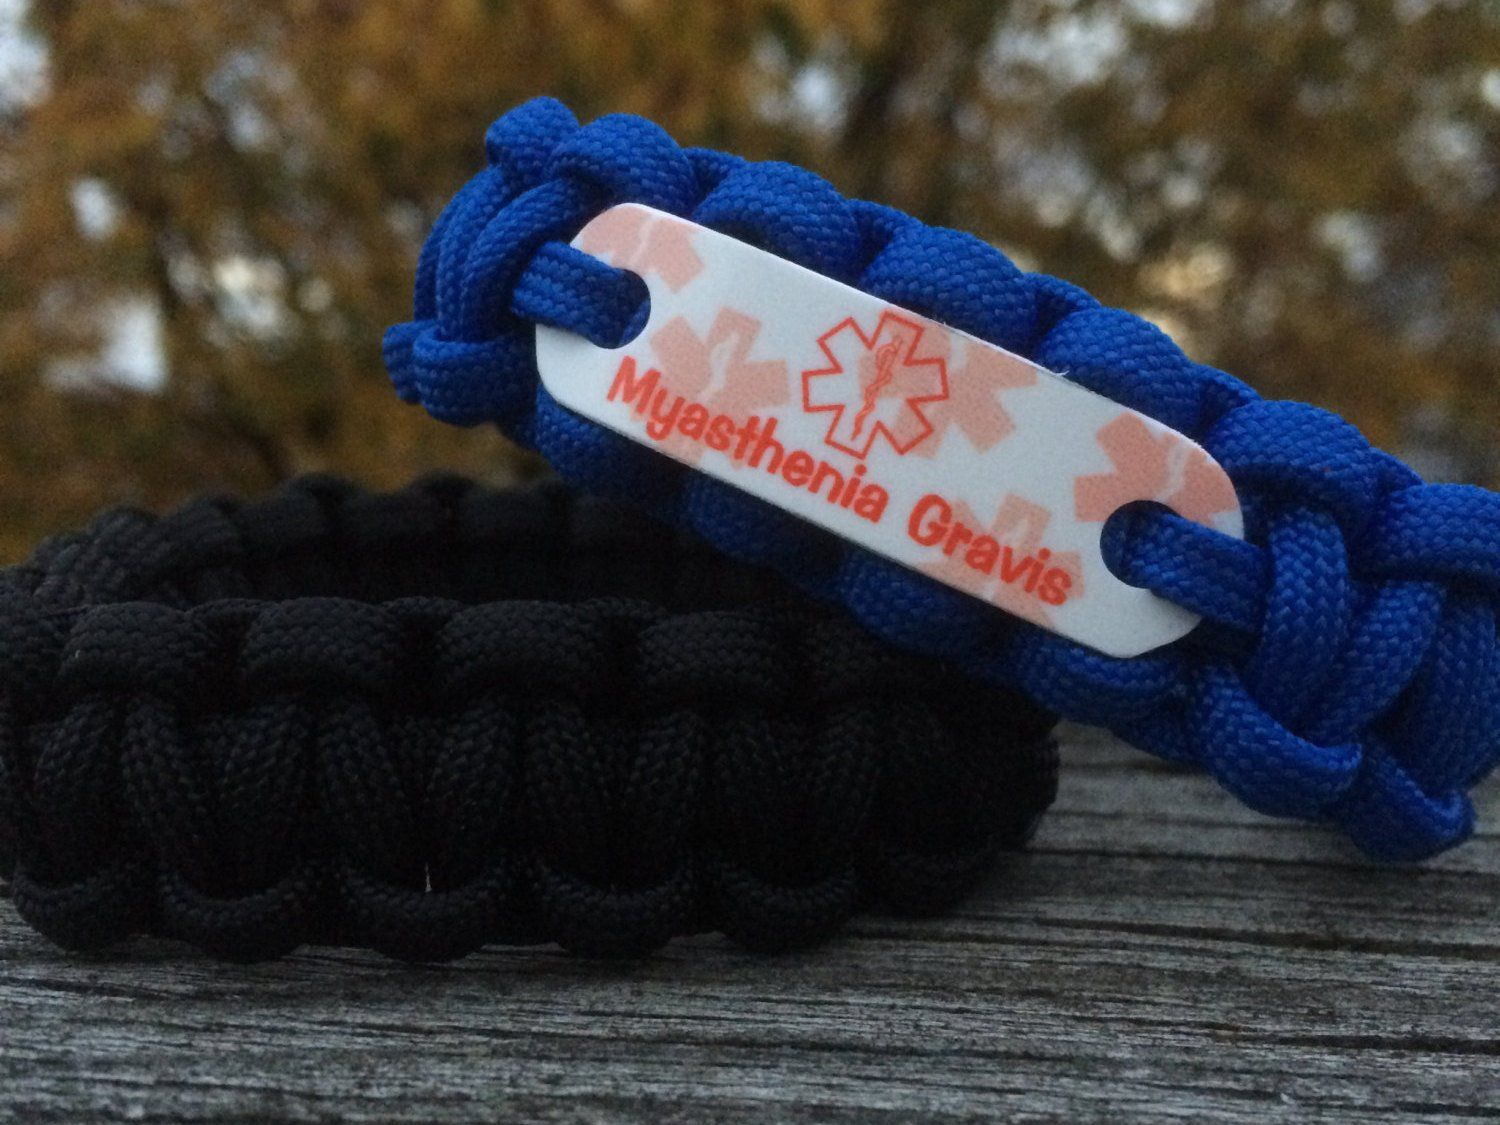 gadow silicone gravis bracelet teal black myasthenia rubber w jewelry and products bracelets wristband